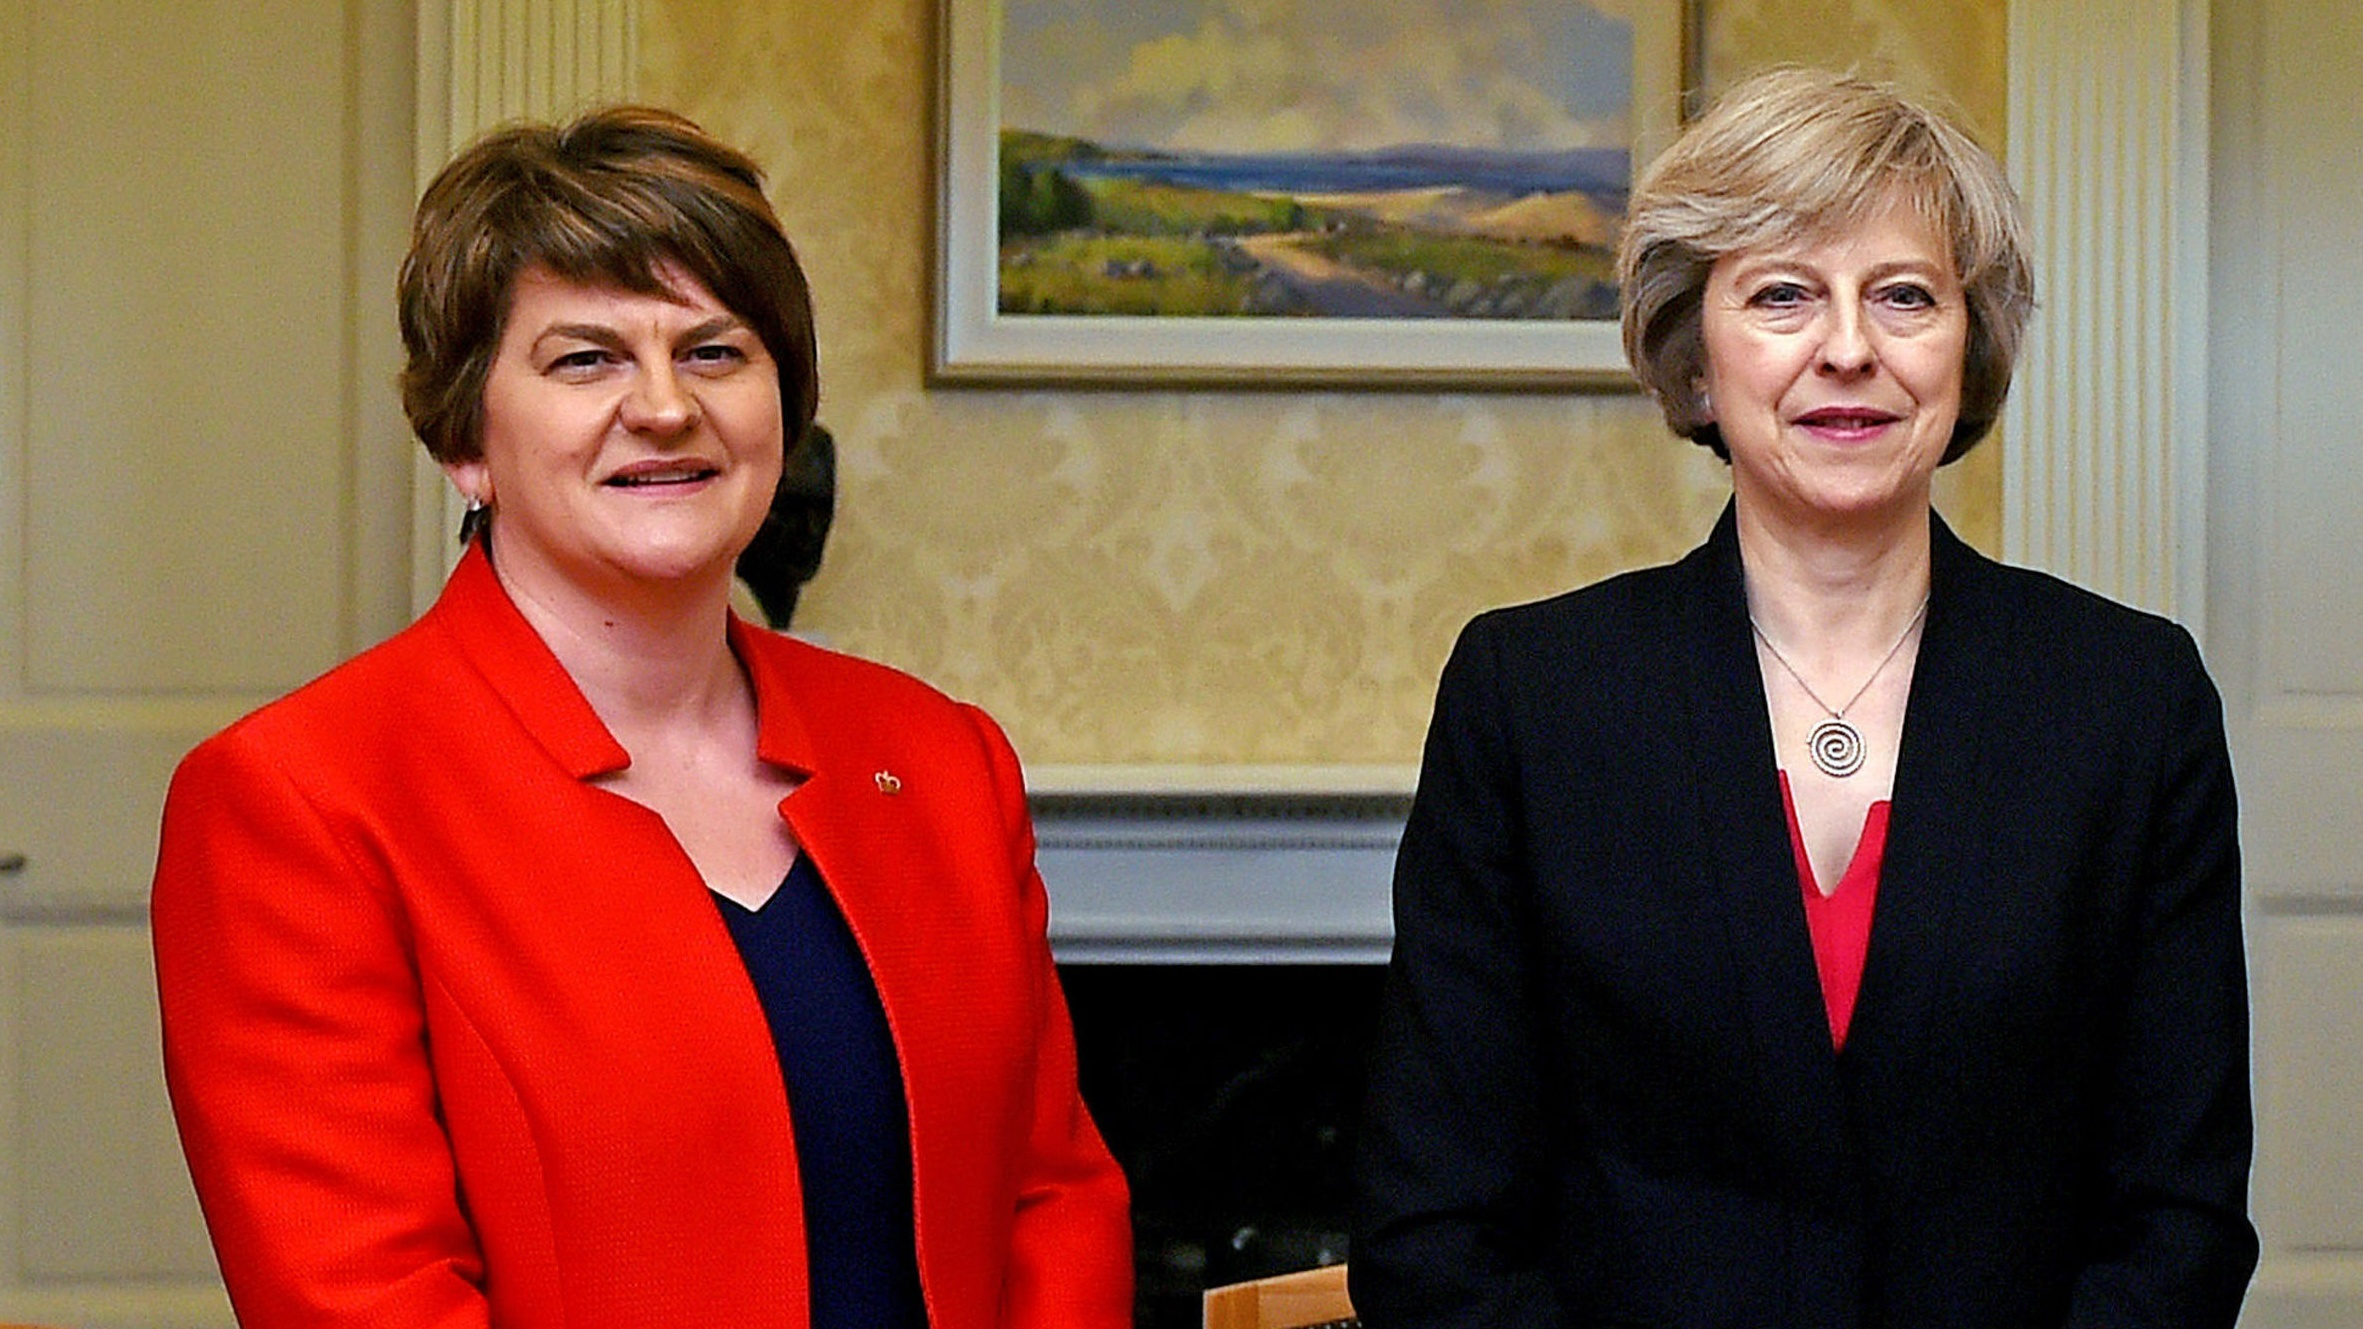 Irish, British PMs to meet to talk Brexit, Northern Ireland crisis